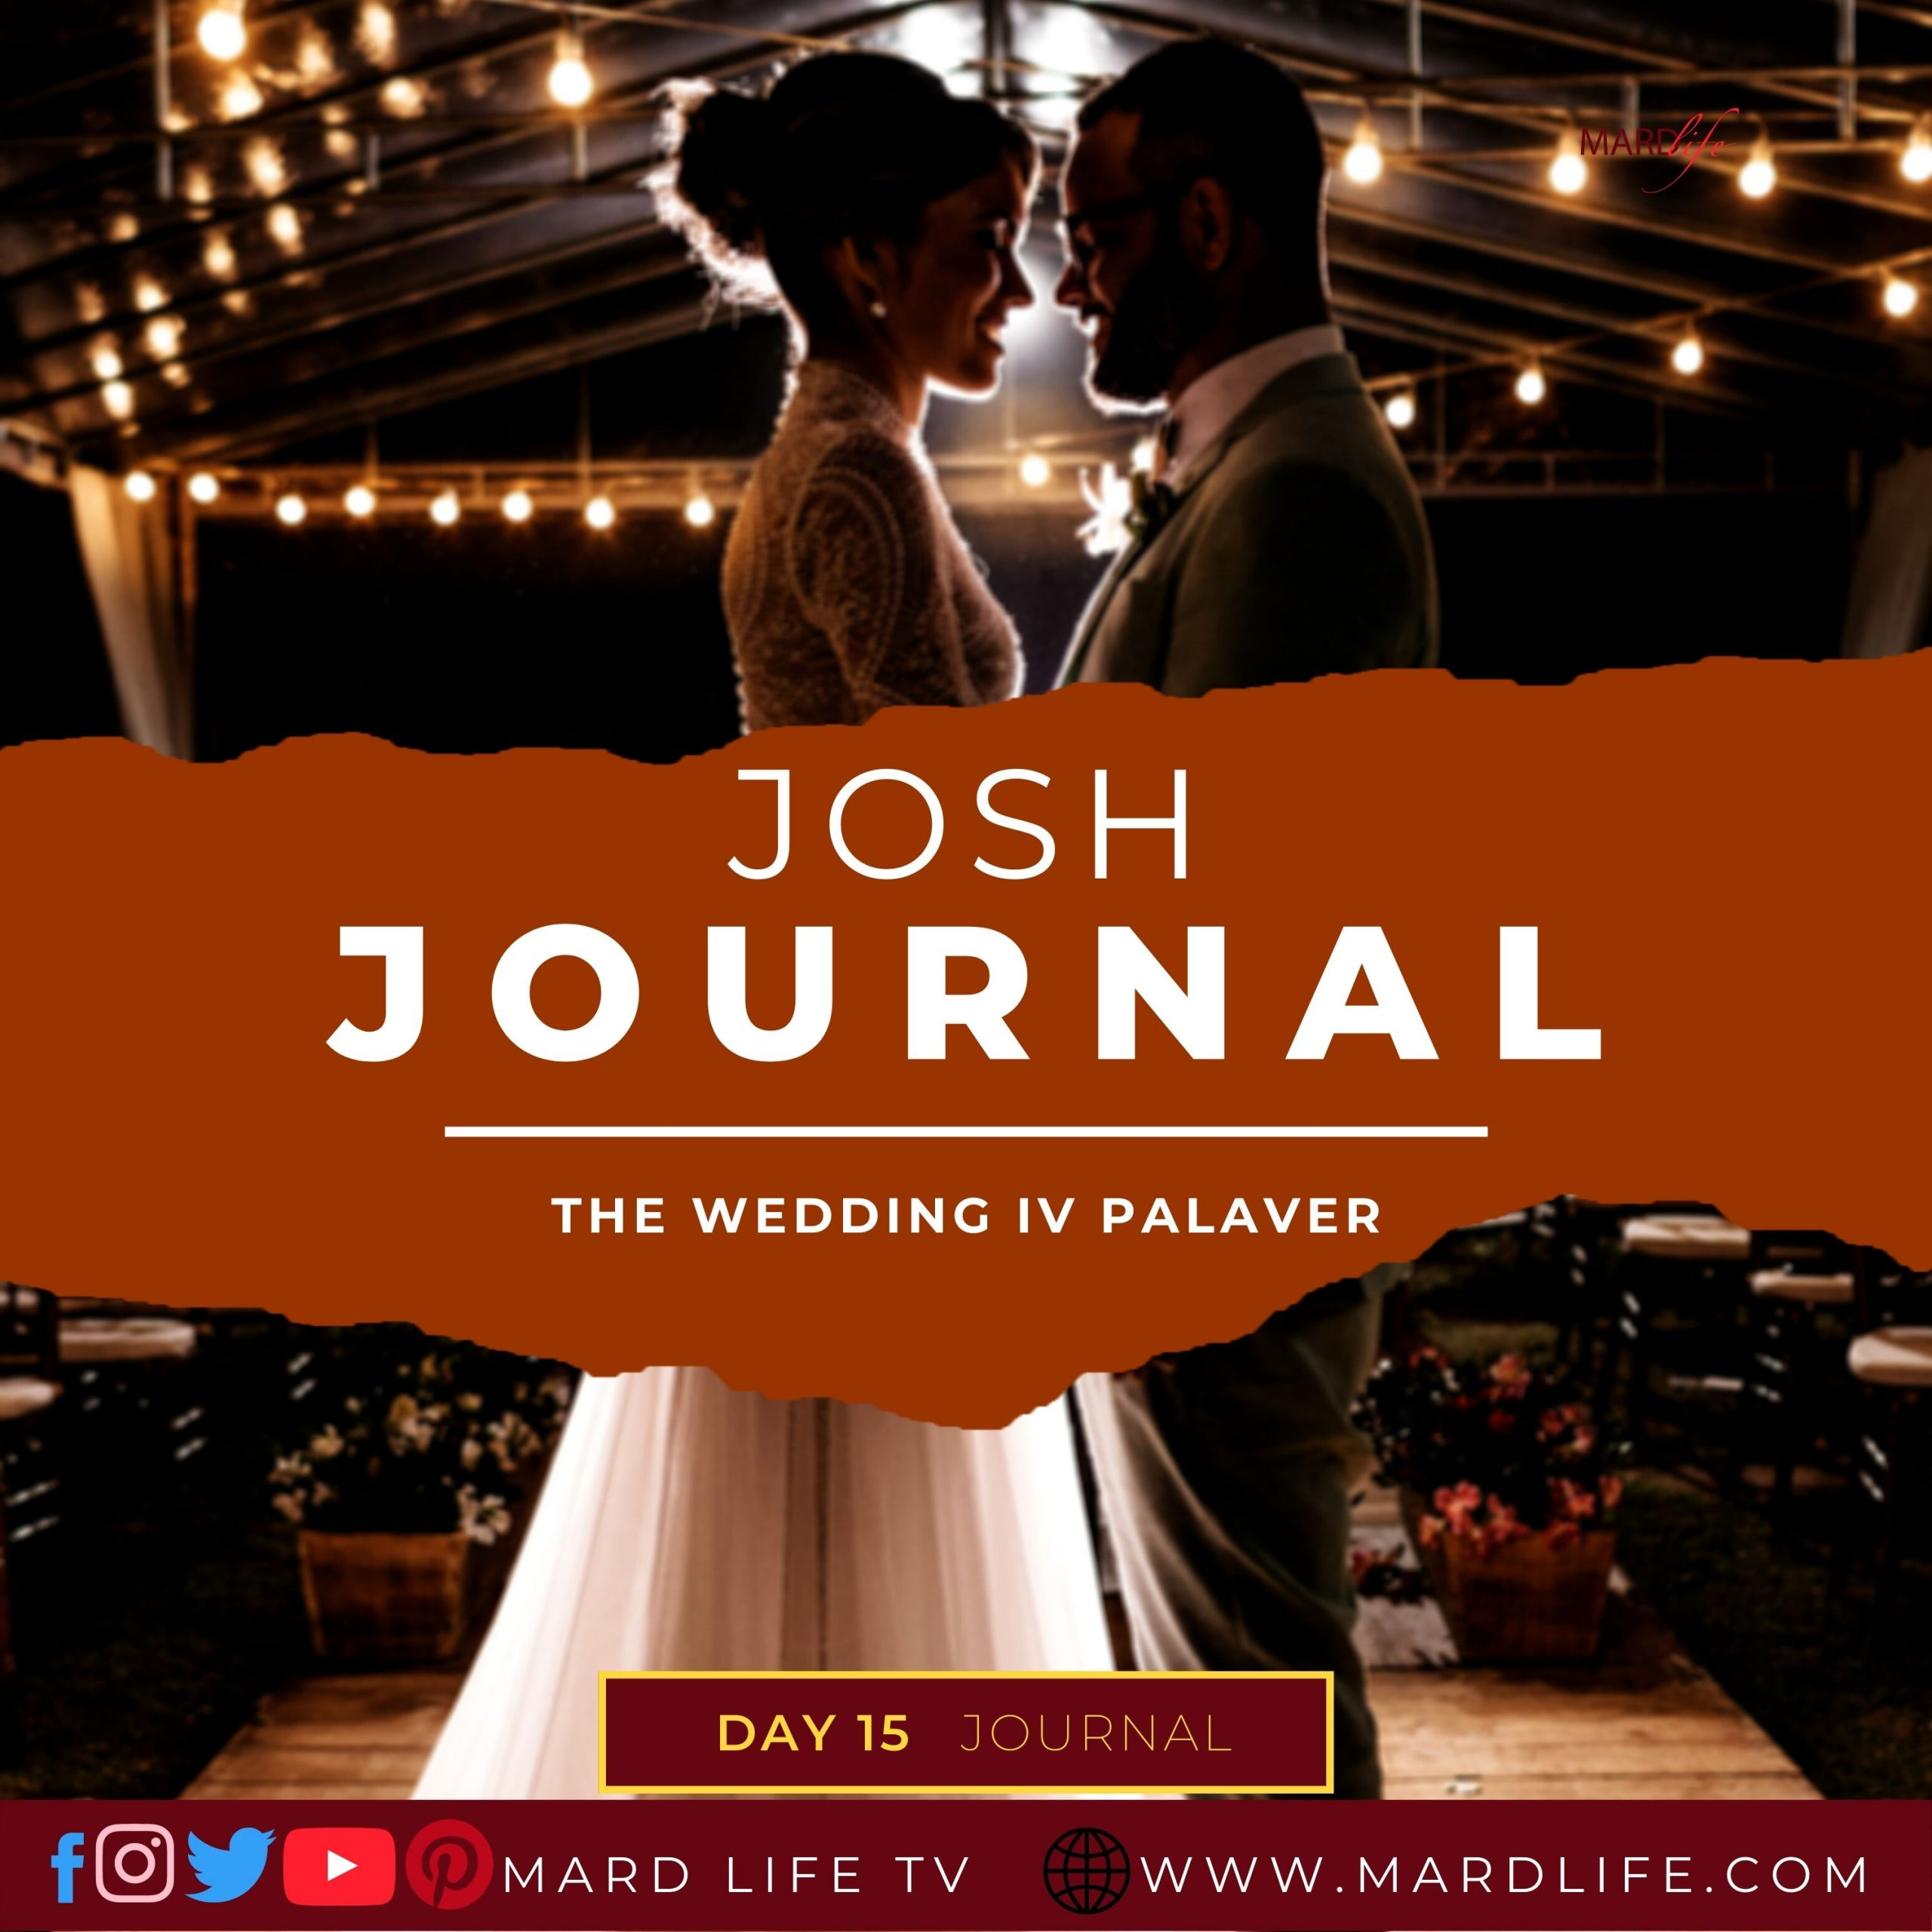 Wedding IV, Wedding Invite, Palaver, Palava, Conundrum, Confusion, Situation, What Should I Do, Marriage, Wedding Ceremony,